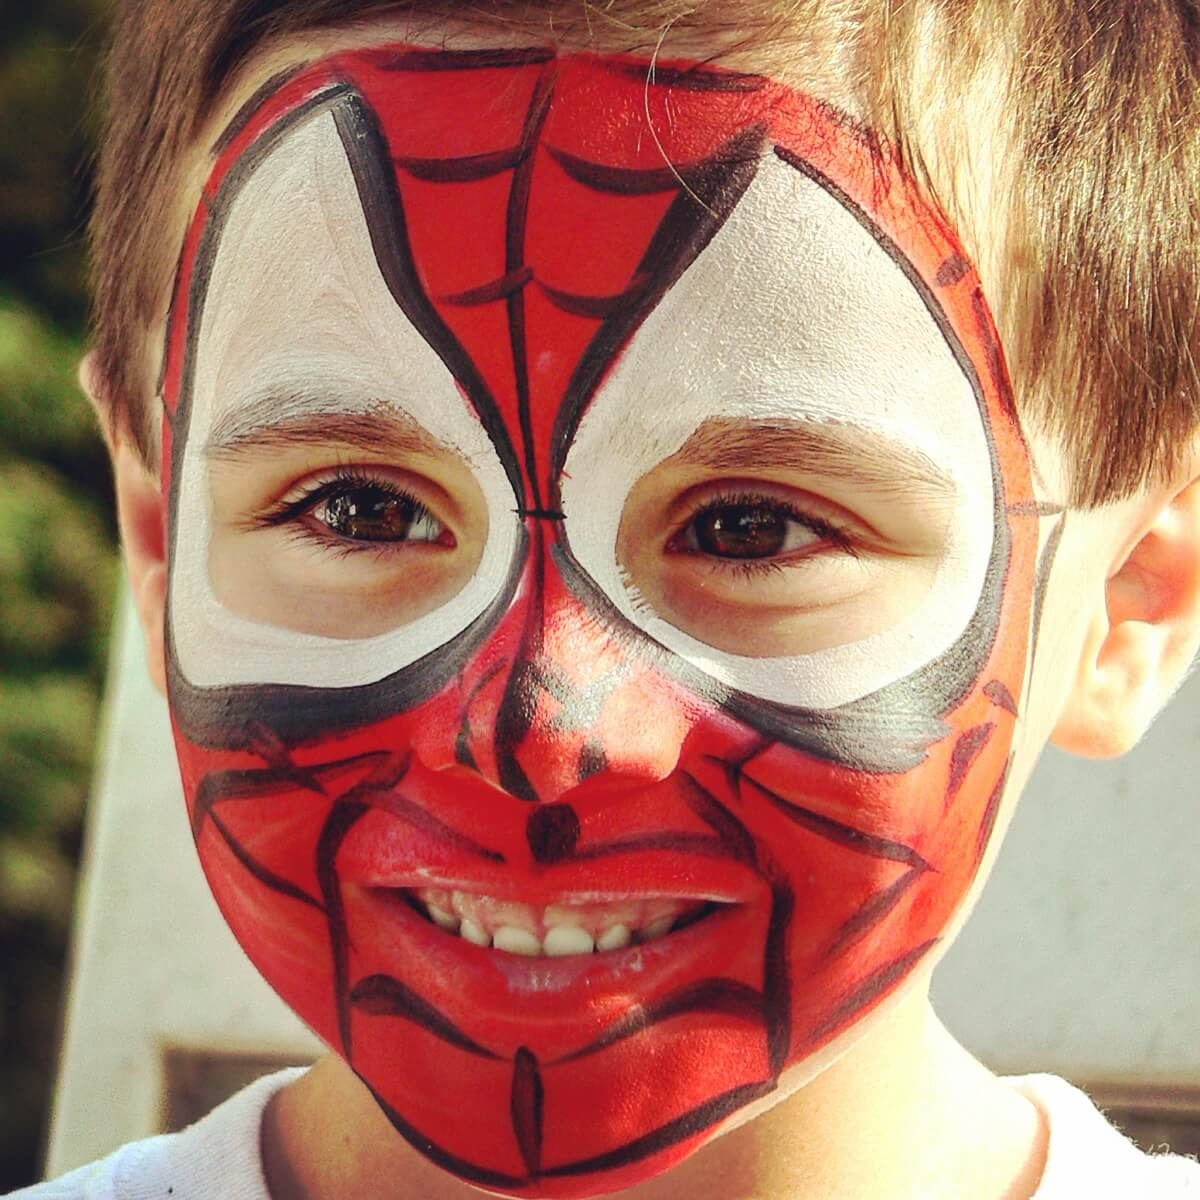 DIY Face Paint Ideas for Kids - Superhero Face Paint for Boys